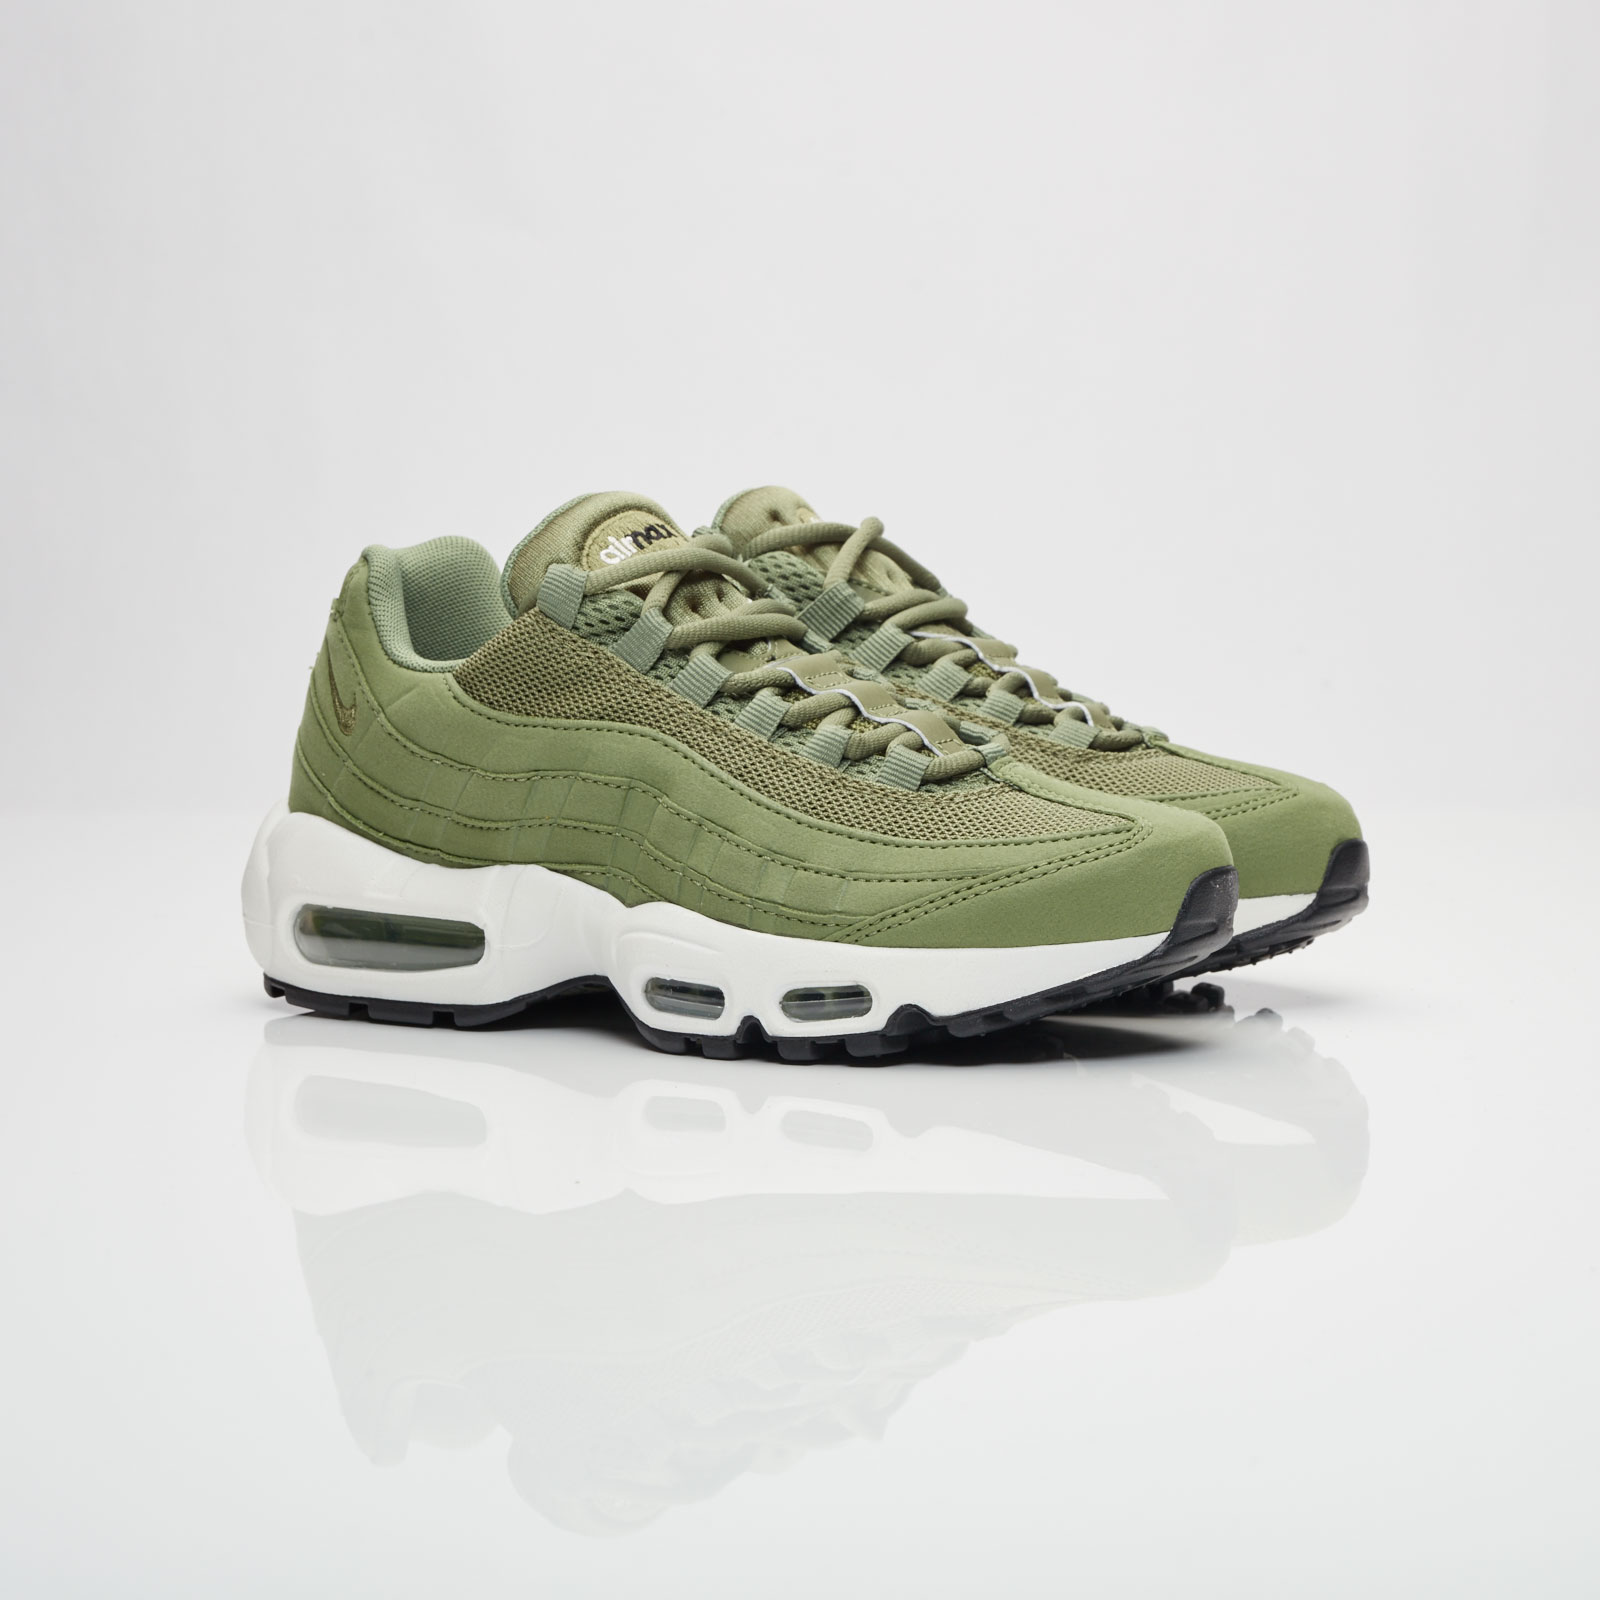 plus récent 40c16 88feb nike air max 95 Archives - Air 23 - Air Jordan Release Dates ...